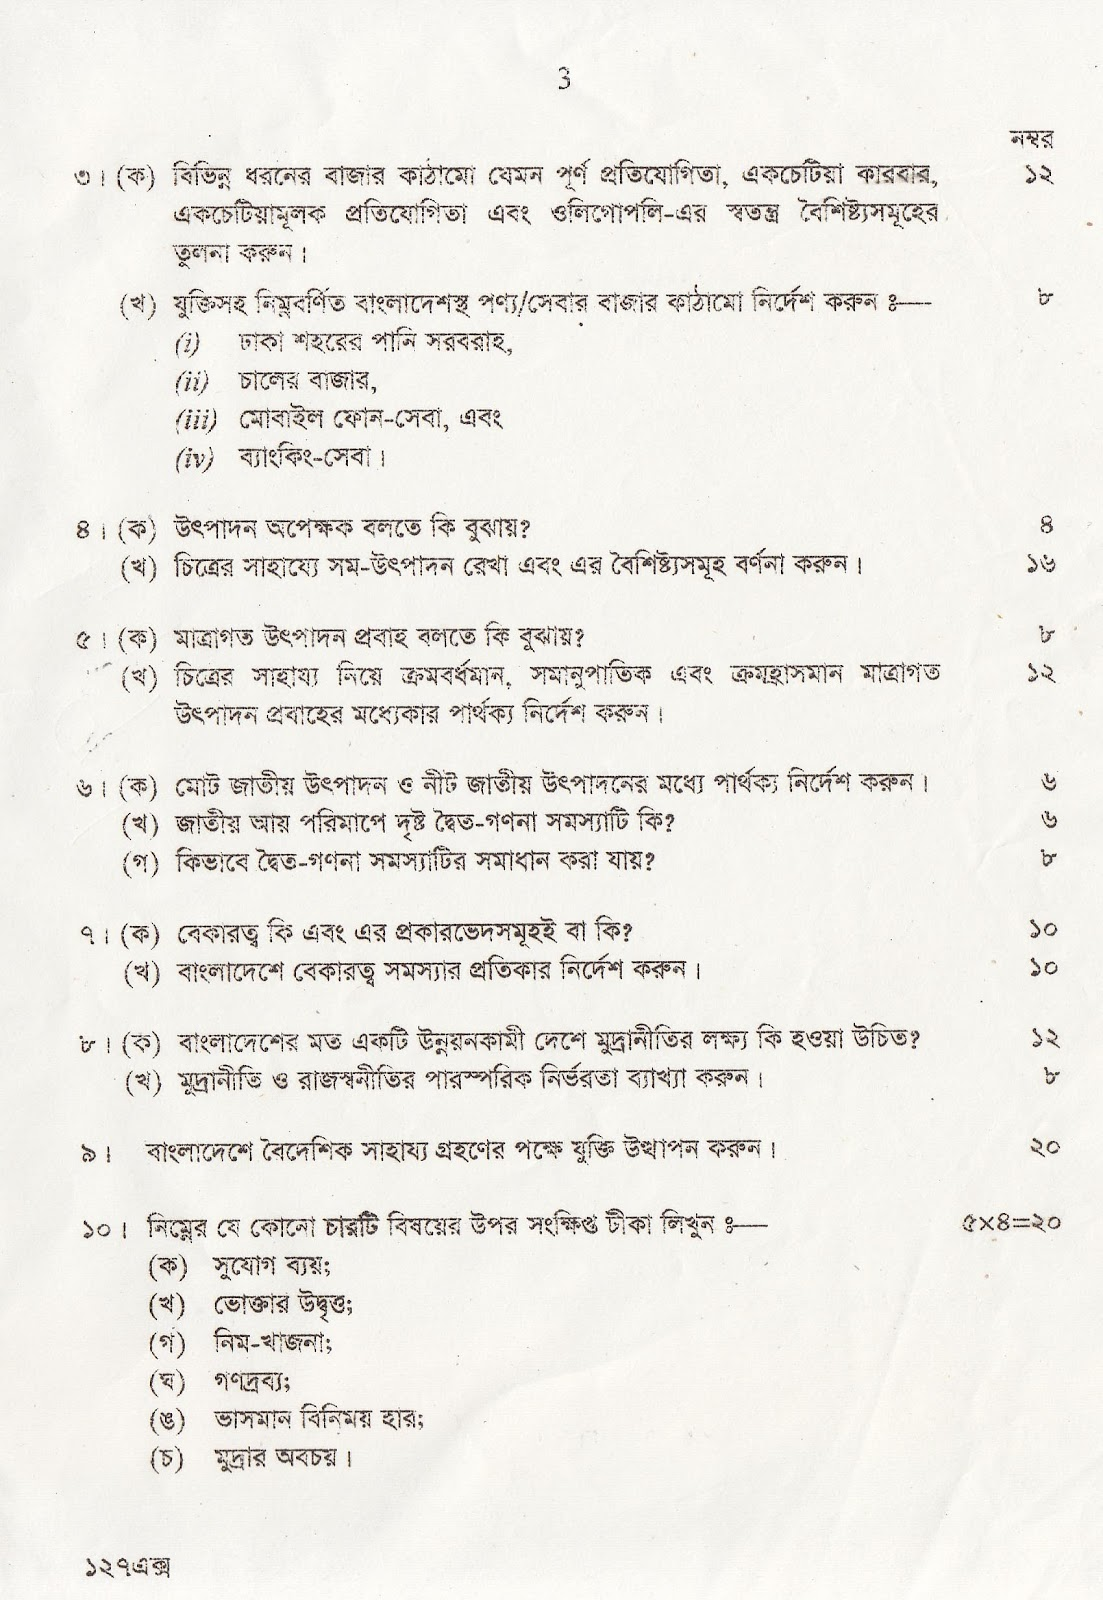 economics question jaibb Banking diploma provides news, notice, forms, contents, study materials, result about jaibb and daibb banking diploma examination based in bangladesh banking diploma, jaibb, junior associate of the institute of bankers, bangladesh (jaibb), examination study materials, daibb, diplomaed associate of the institute of bankers, bangladesh.